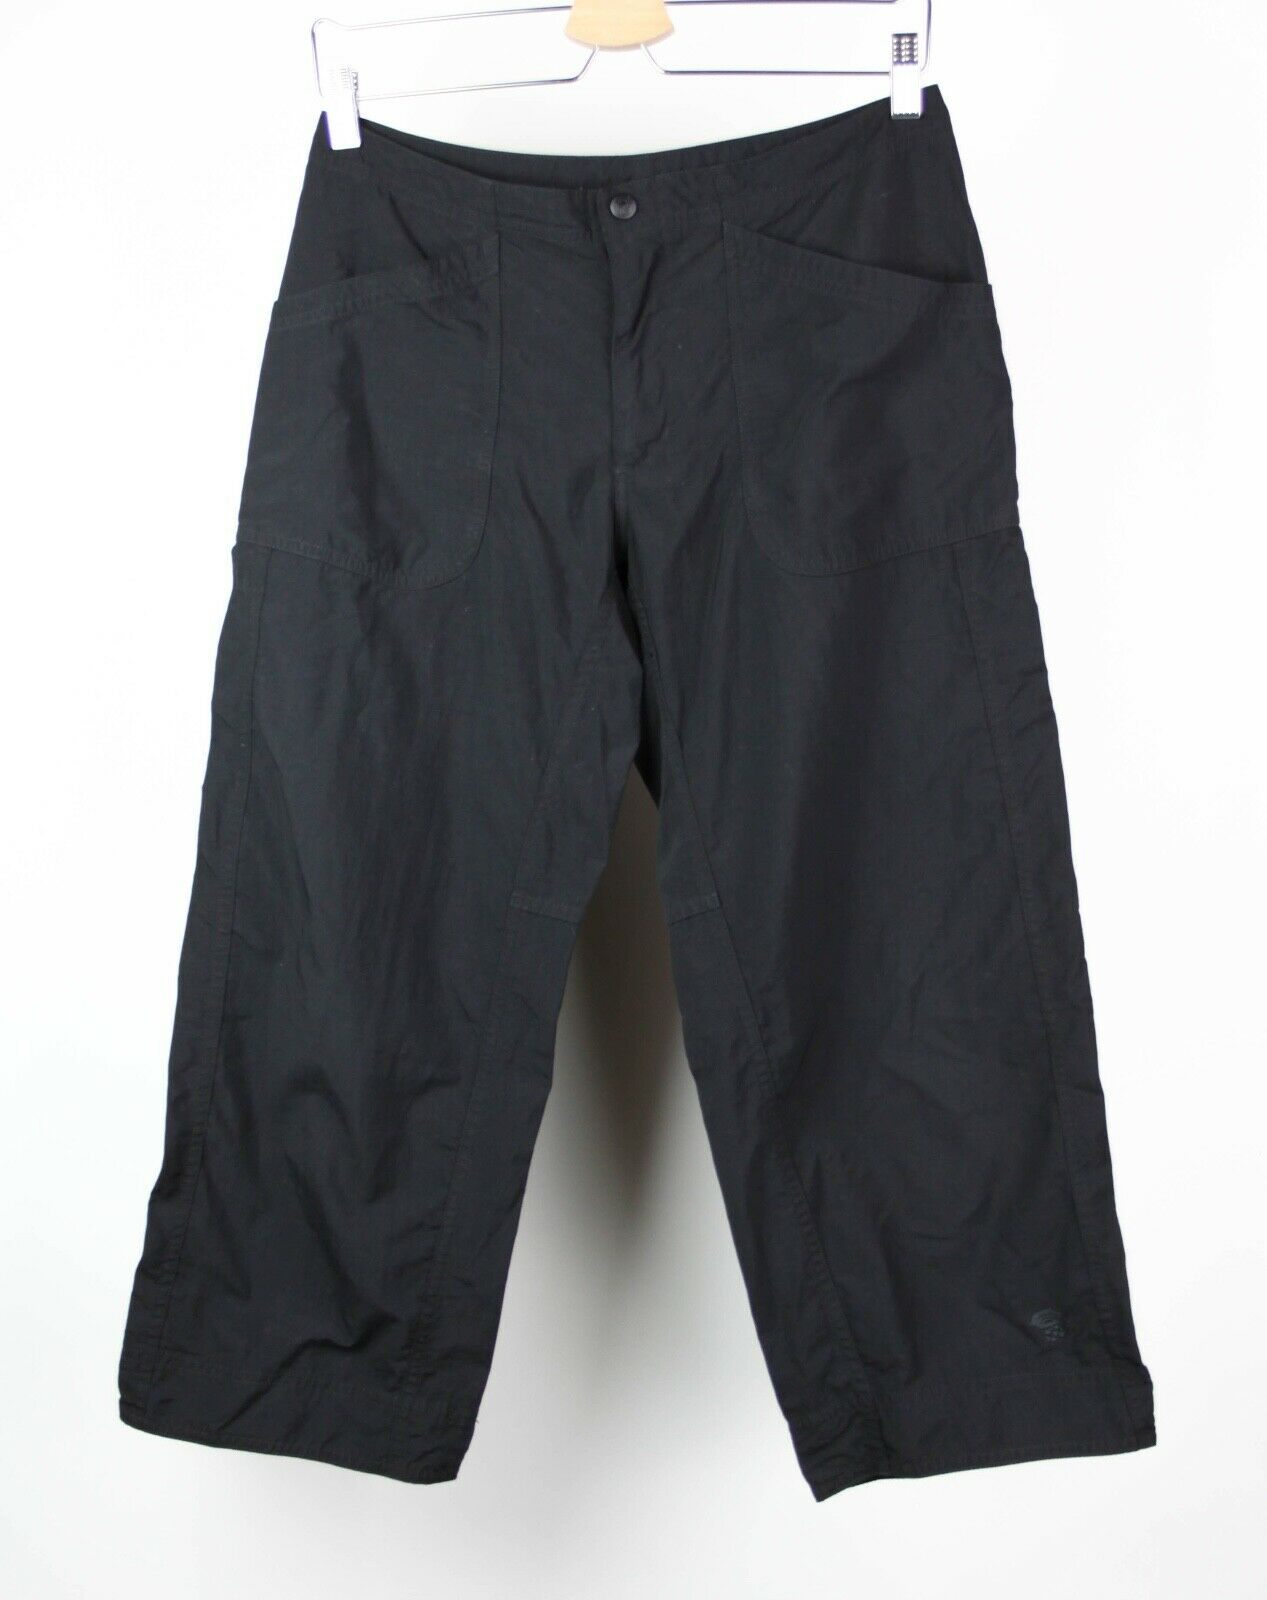 Mountain Hardwear Womens Pants Cropped Athletic Size 6 Black AT57